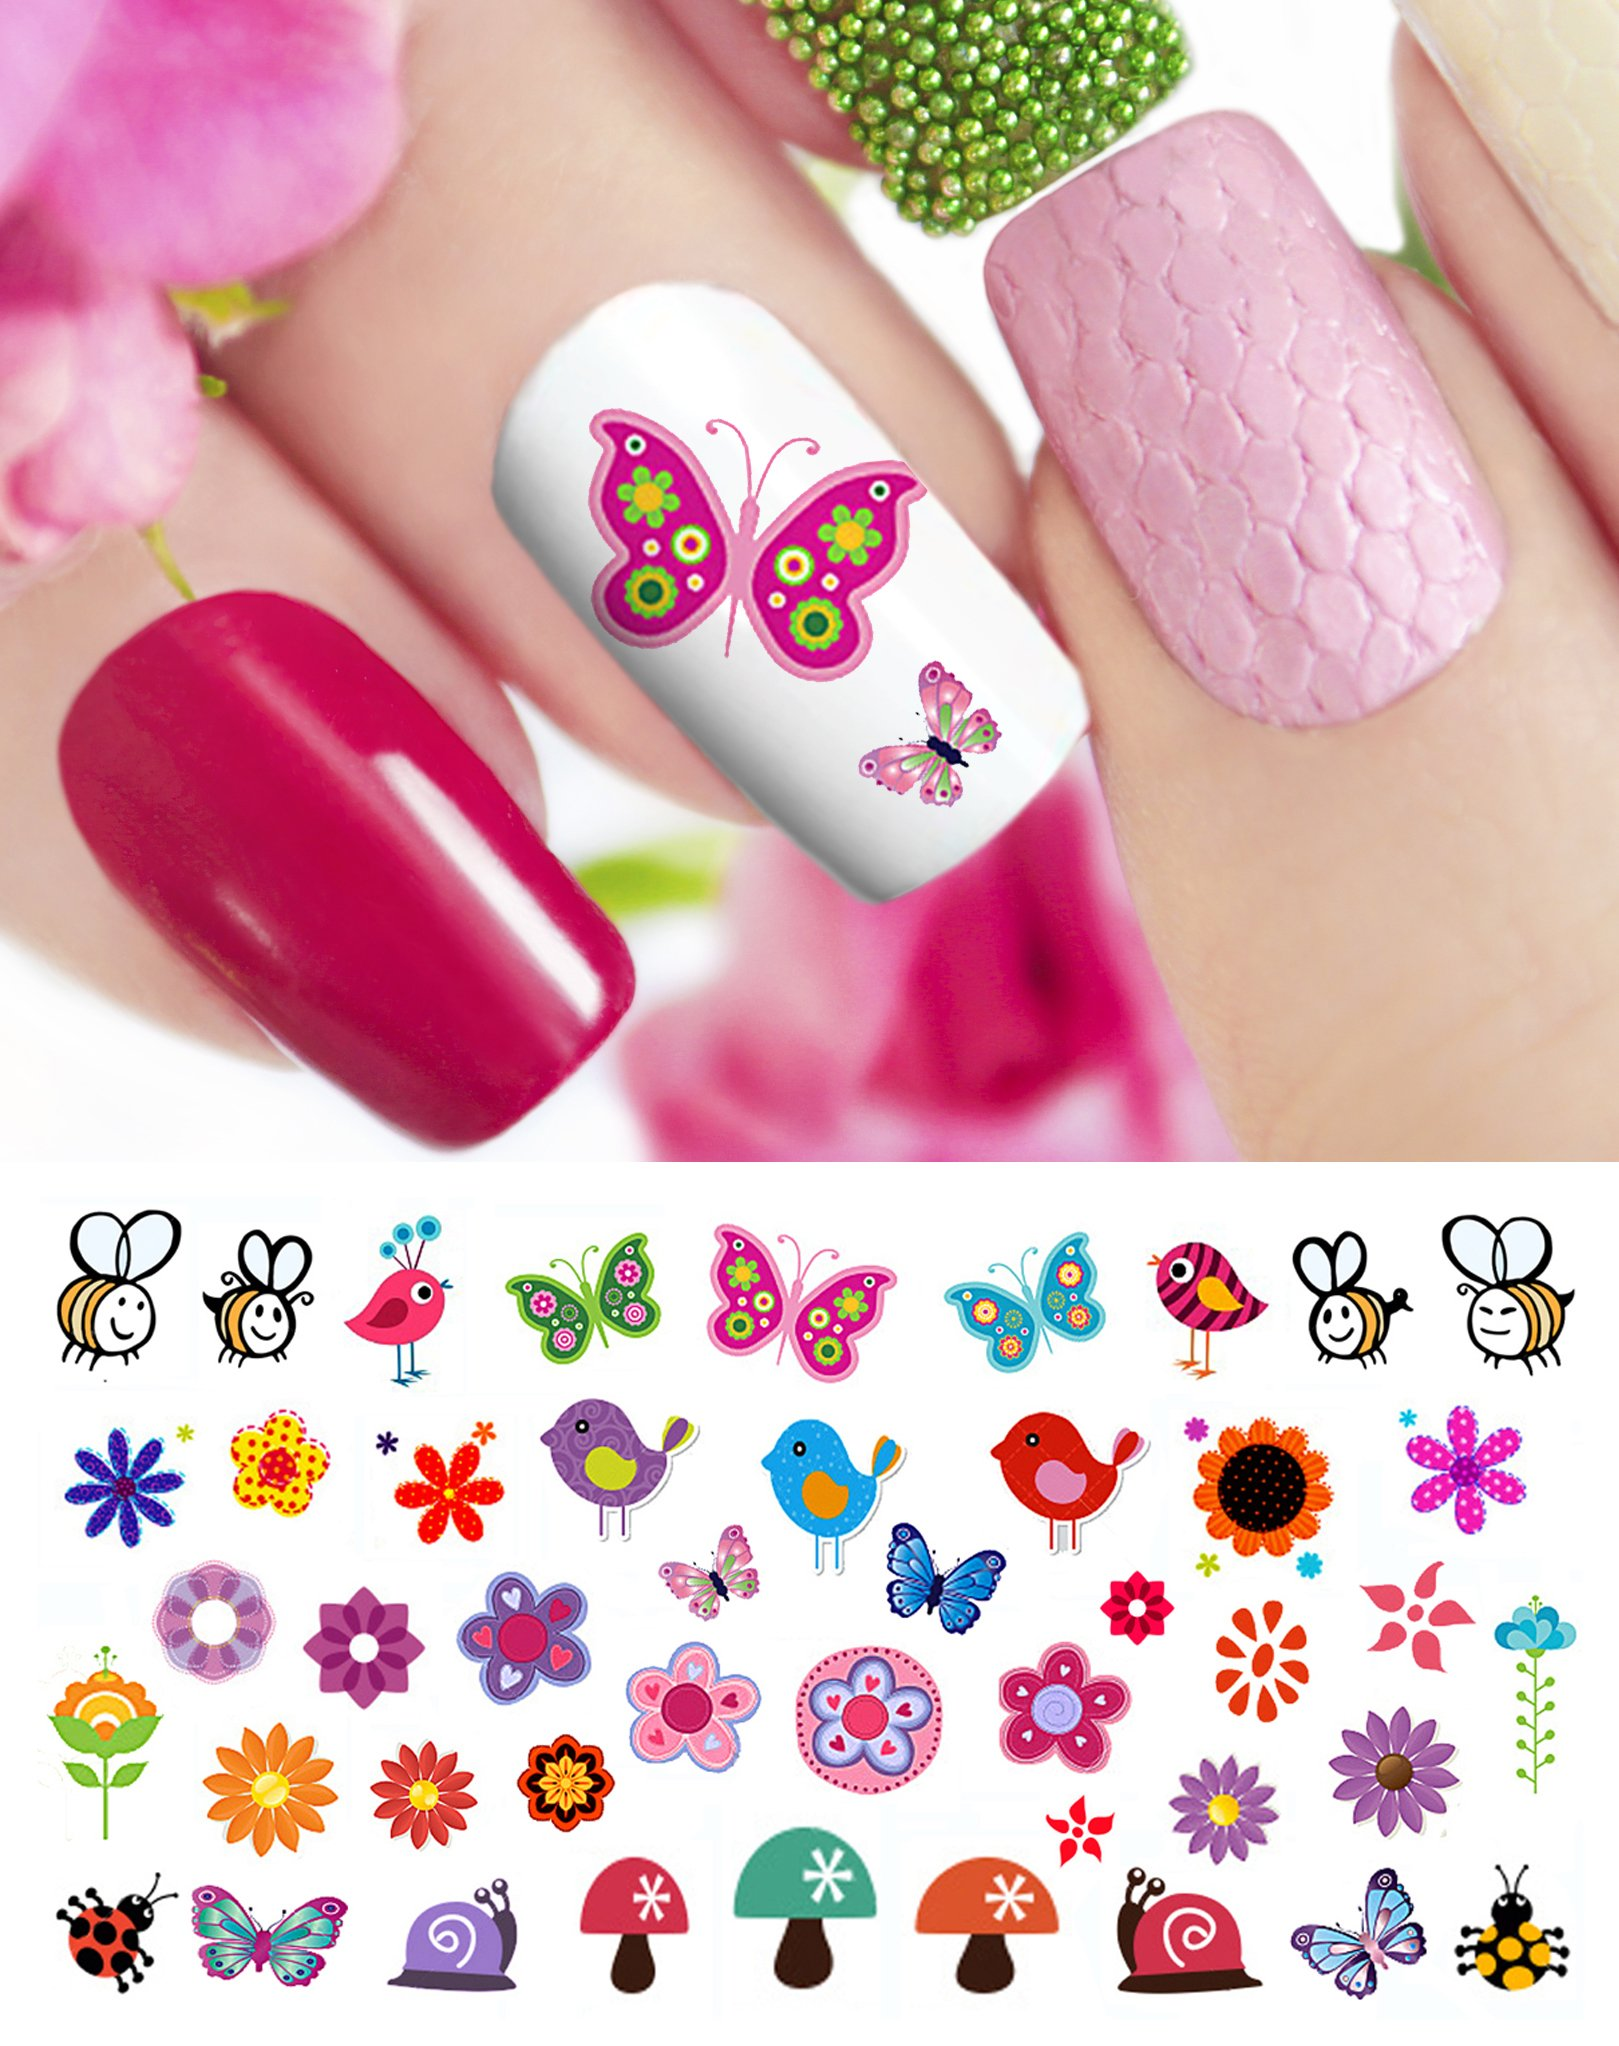 Amazon.com: Owl Assortment Nail Art Waterslide Decals Set #1 - Salon ...